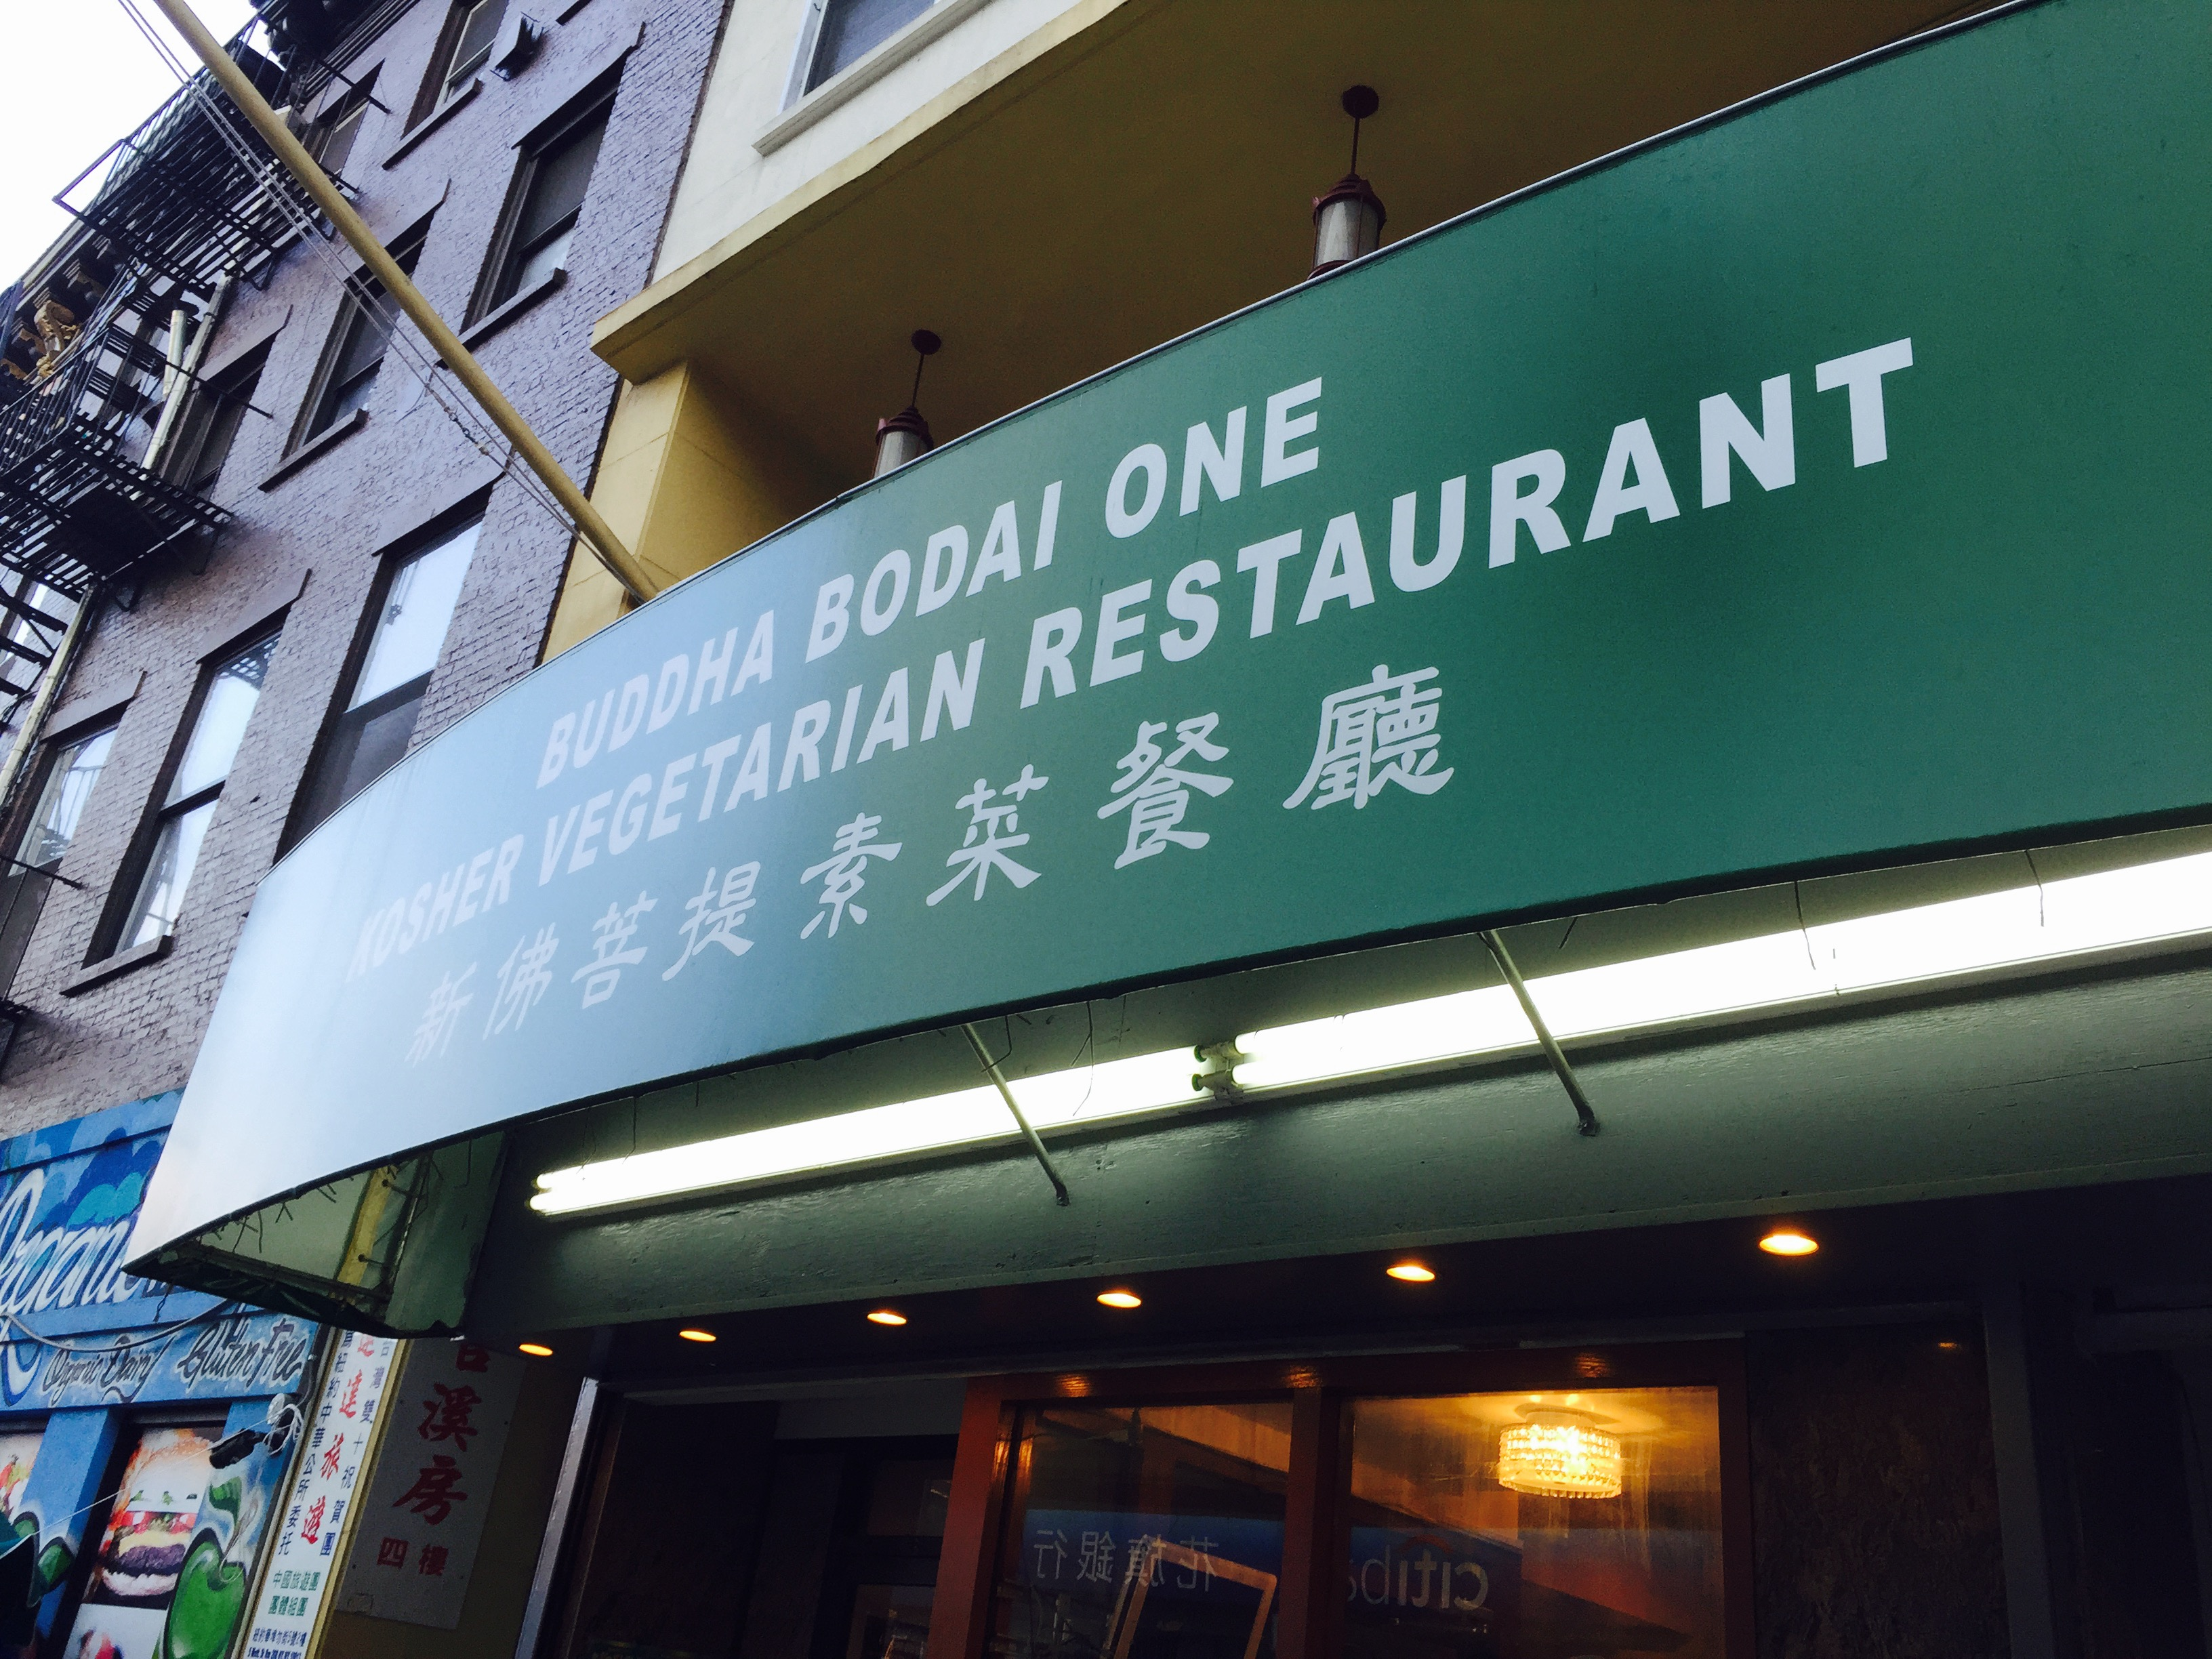 Original Buddha Bodai One Kosher Vegetarian Restaurant Chinatown